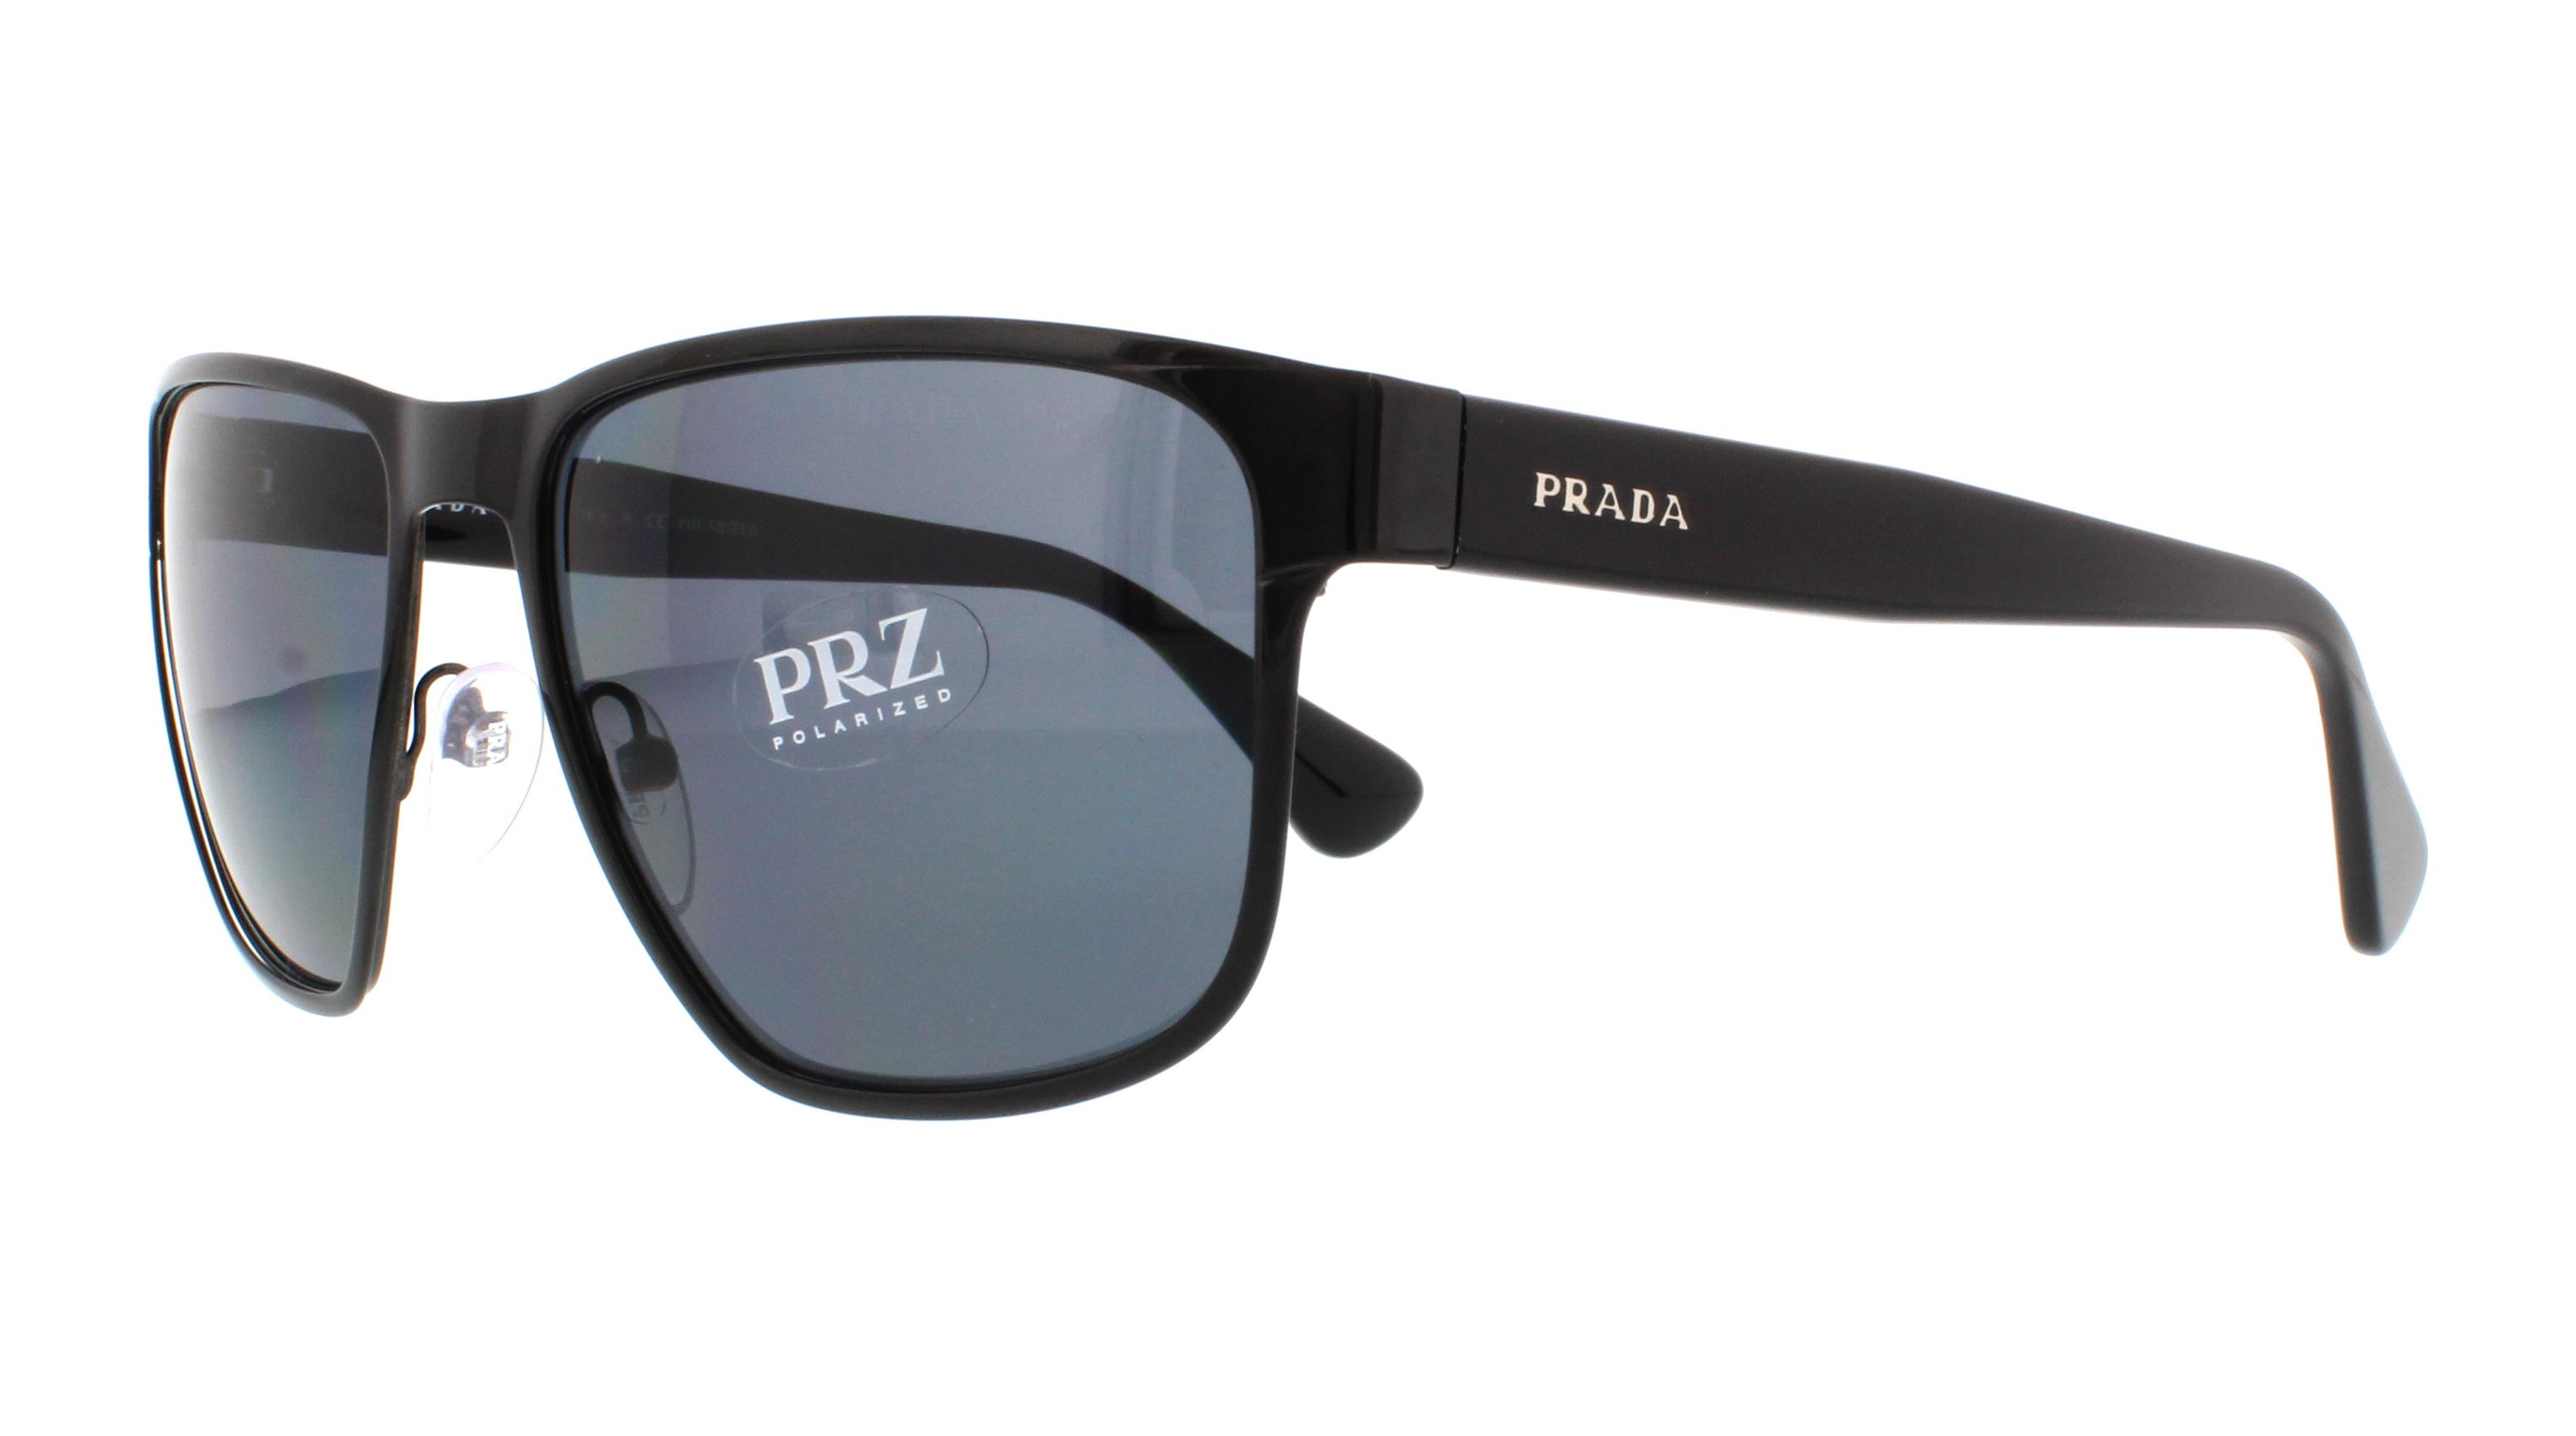 8552b1fc3184 Prada Outlet Black Friday Sale